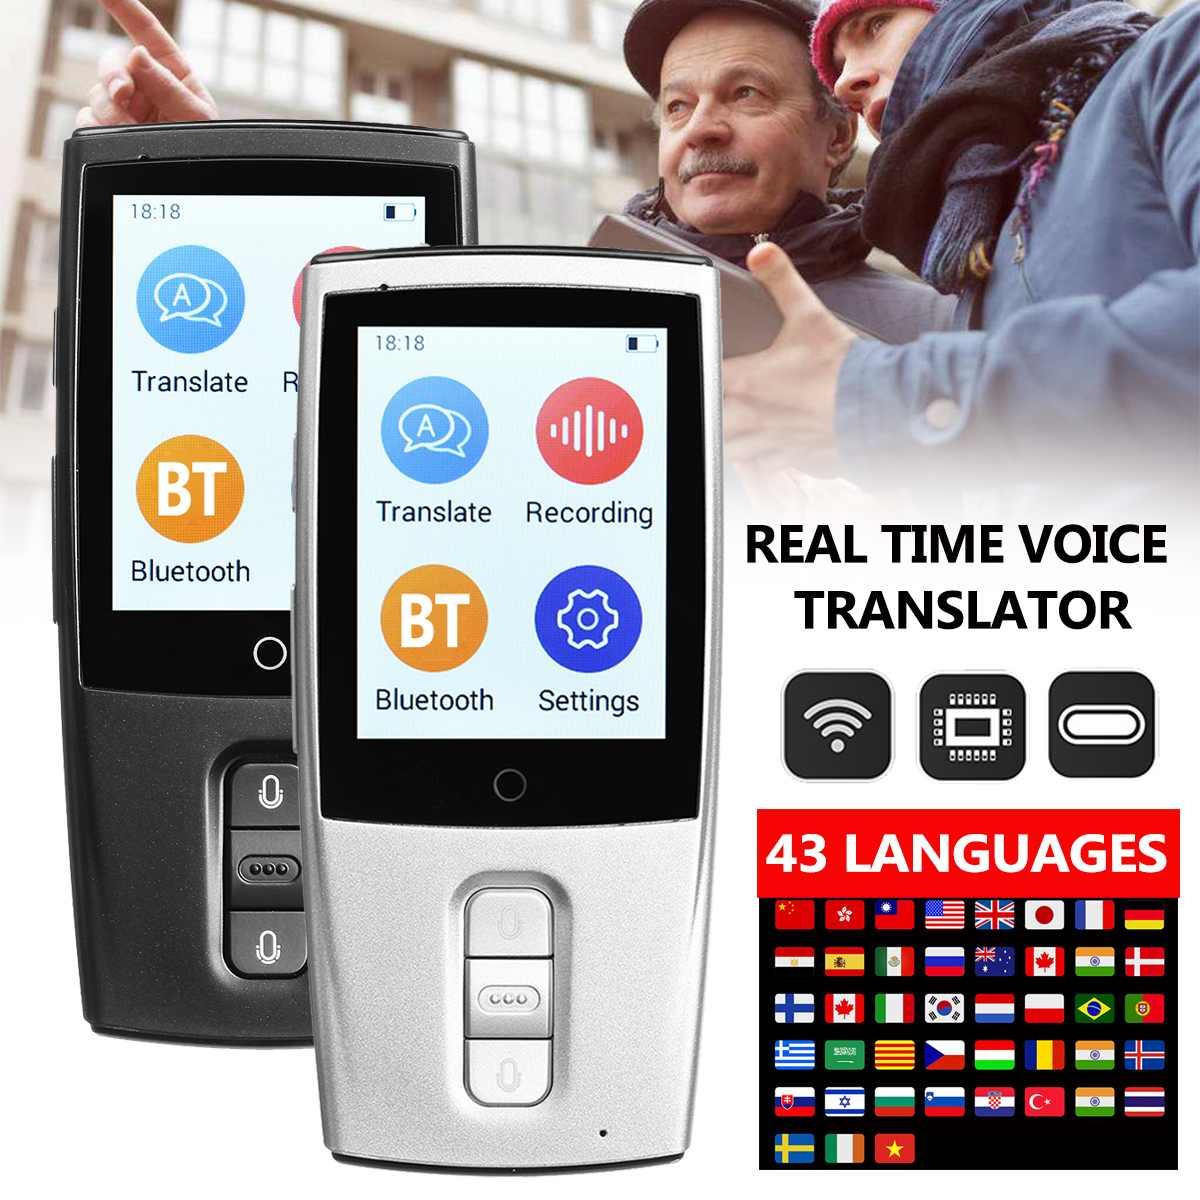 Portable Smart Voice Translator Two-Way Real Time WiFi 43 Languages Instant Traductor Translation for Learning Meeting Business image